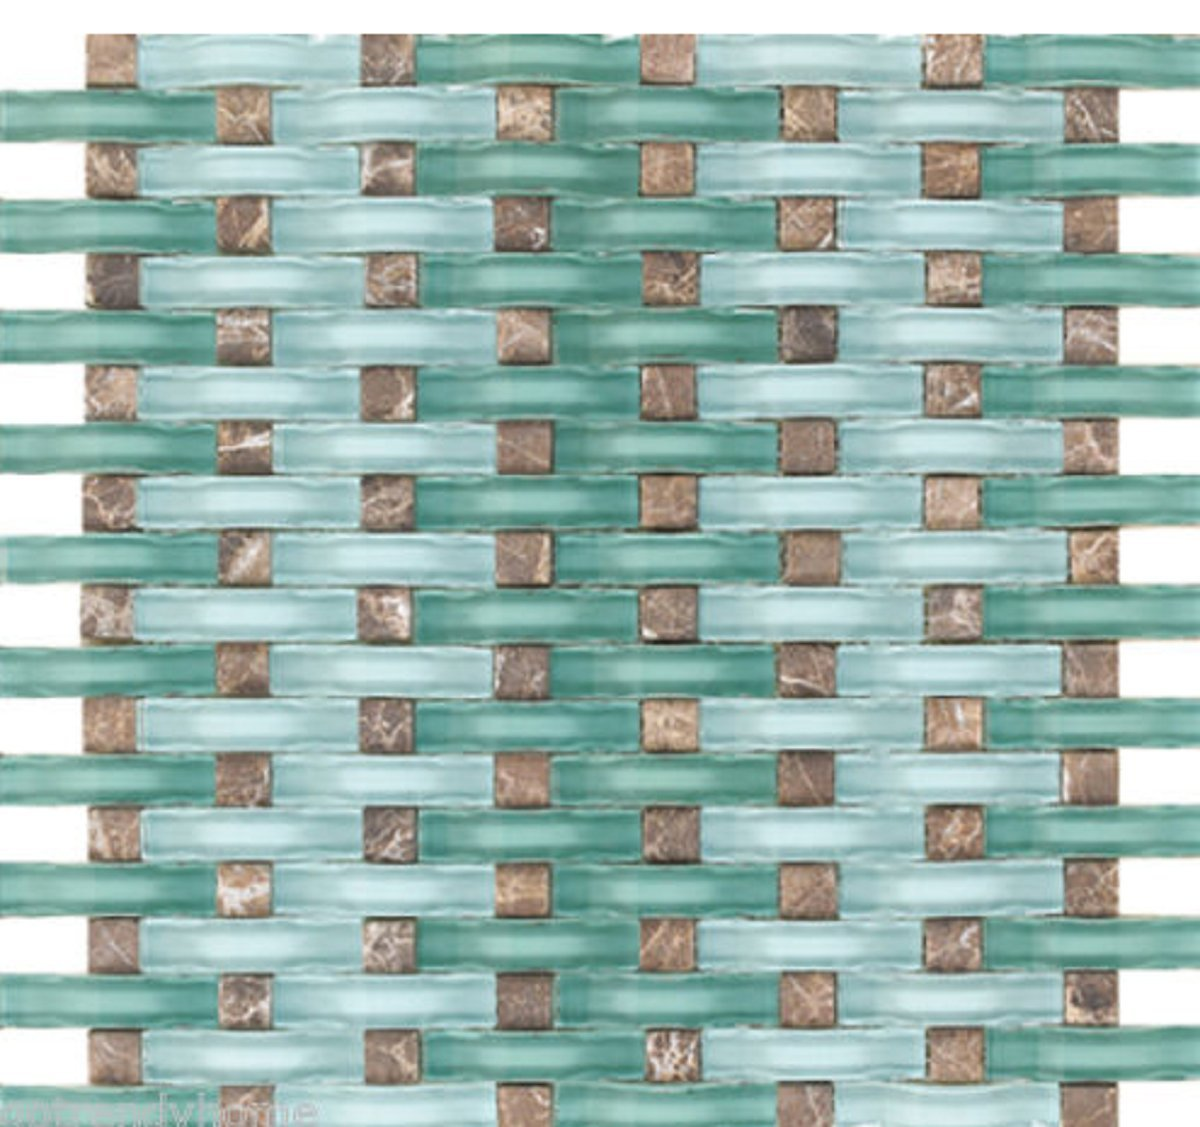 USA Premium Store 10SF- Ocean Blue WAVY Glass Emperador Dark Mosaic Tile Mix Kitchen Backsplash by USA Premium Store